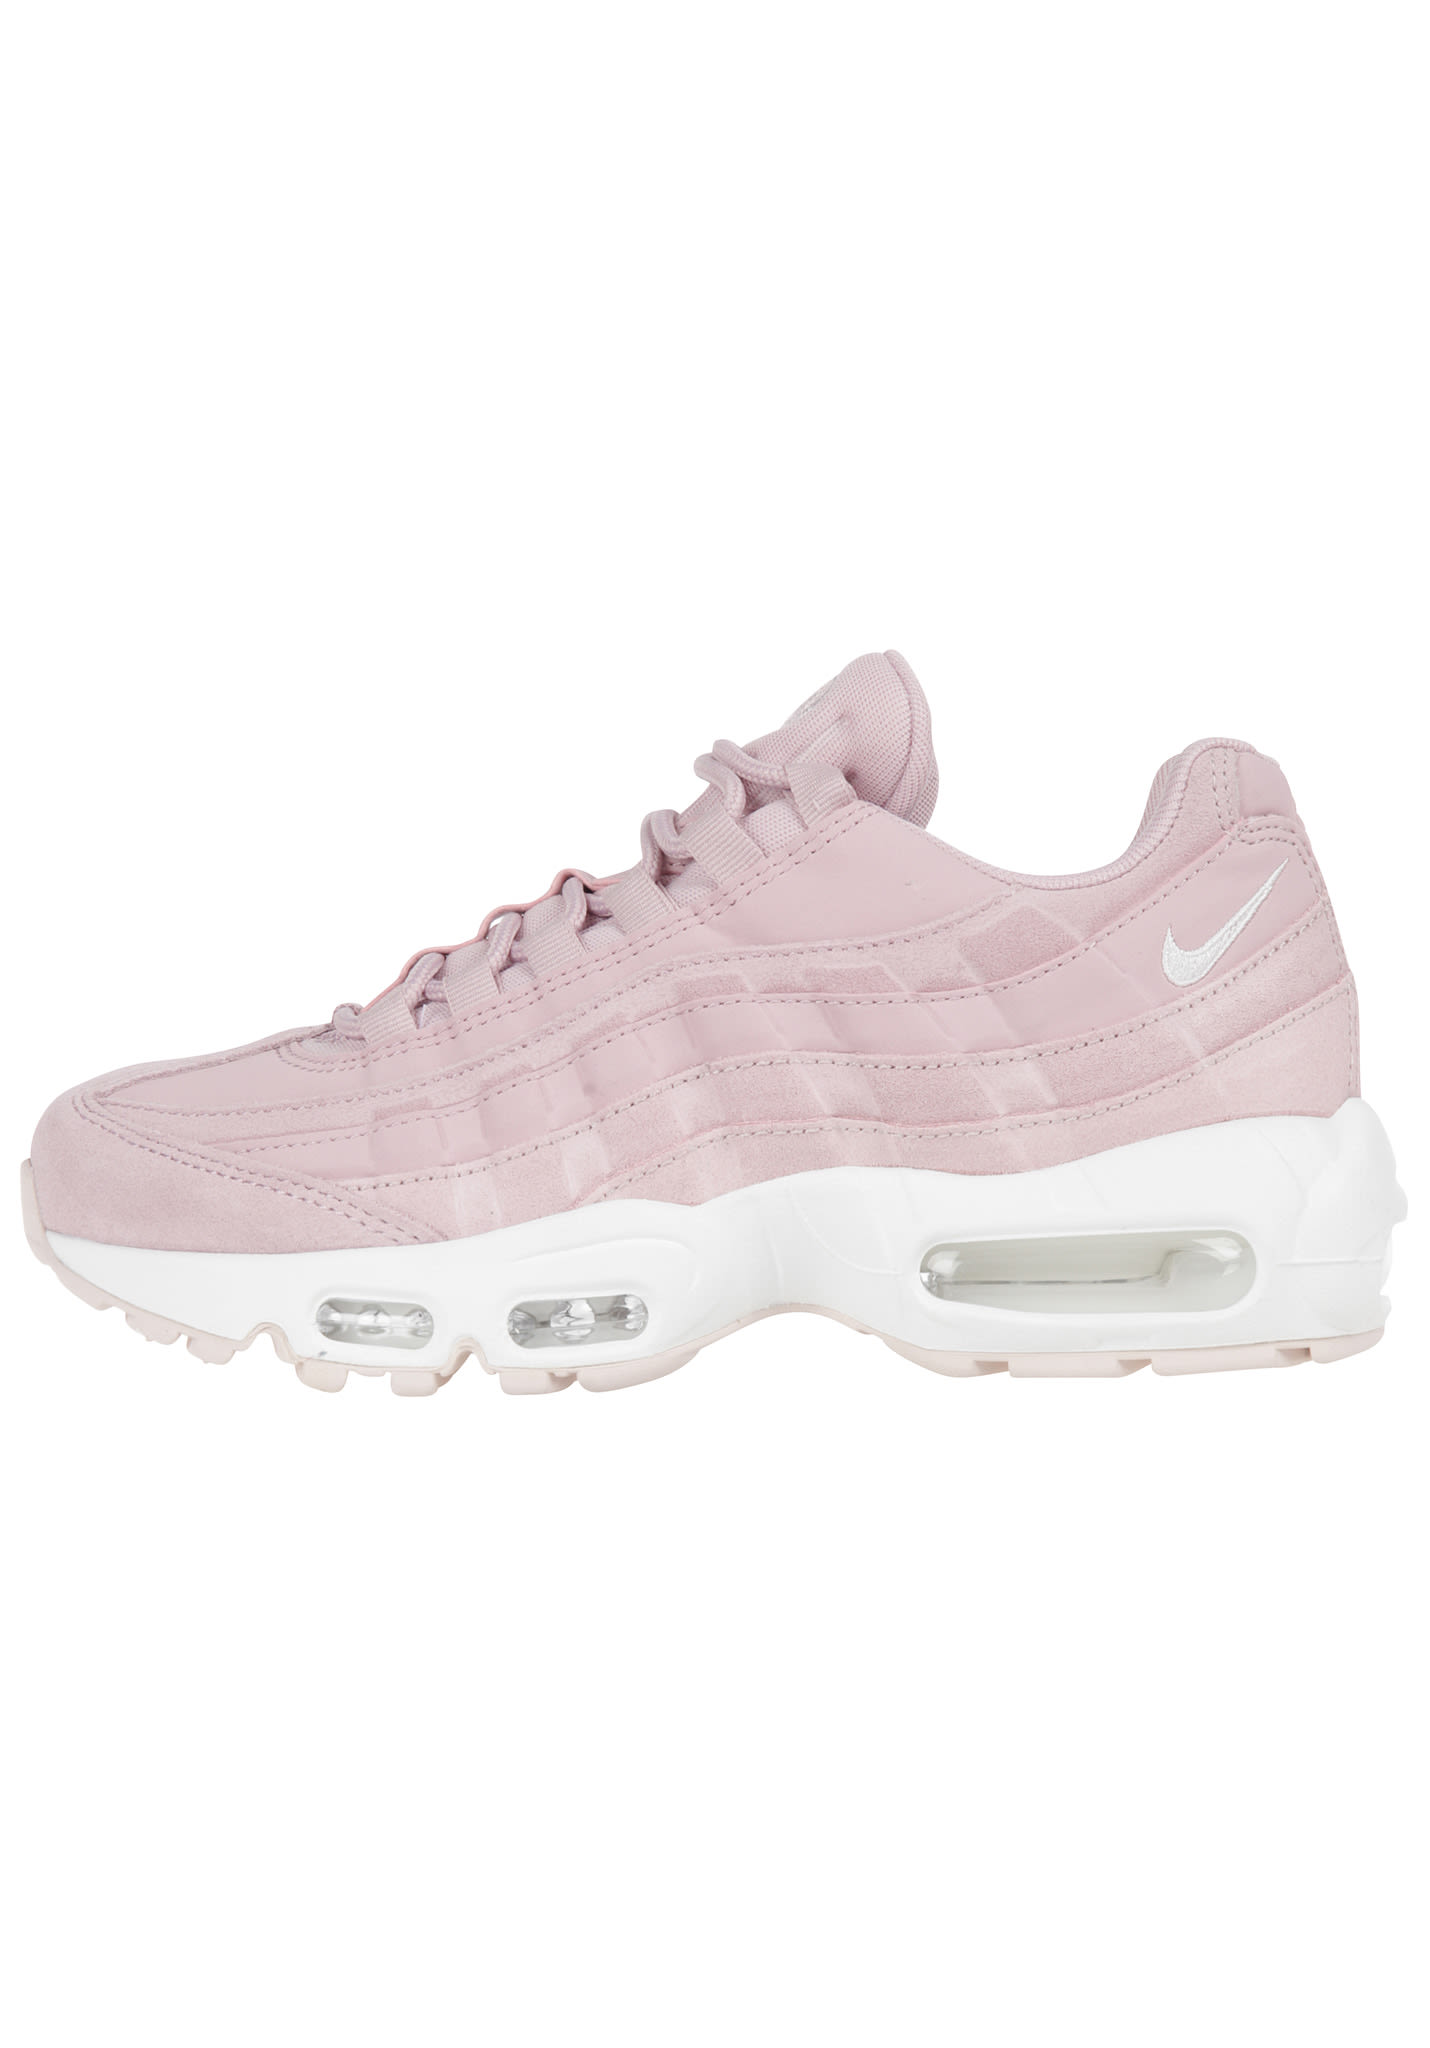 NIKE SPORTSWEAR Air Max 95 Prm Sneakers for Women Pink